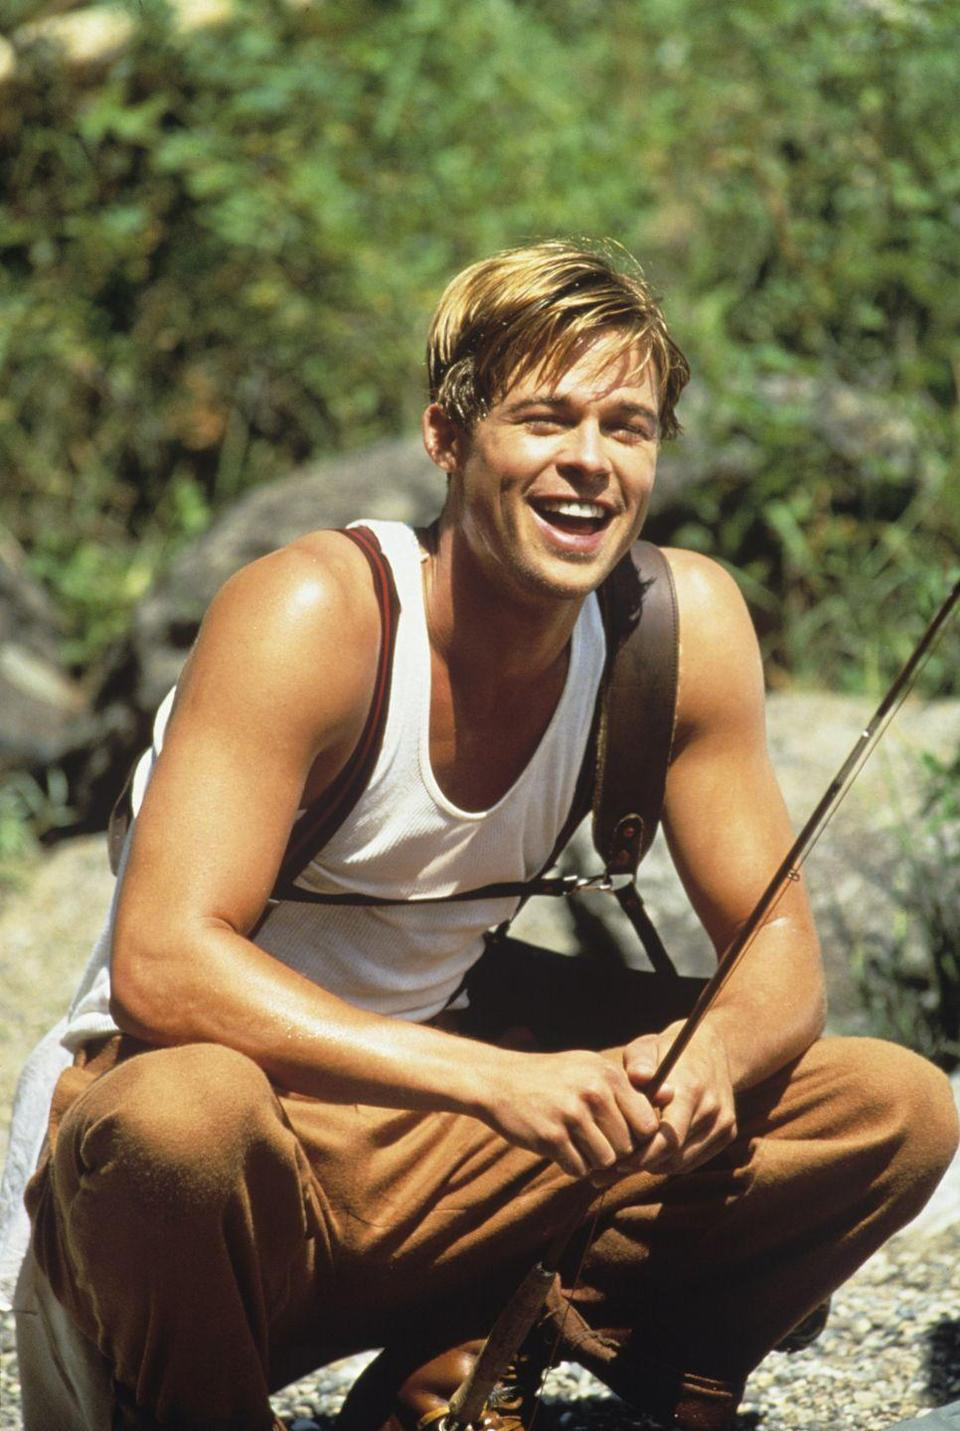 <p>Here, the boy is evolving into a man. The blonde hair has been chopped into something resembling a more uniform cut, but the face and demeanor maintain their youth. Fun fact: This is also the year that Brad Pitt hooked up with Geena Davis in a hotel before stealing her money!</p>